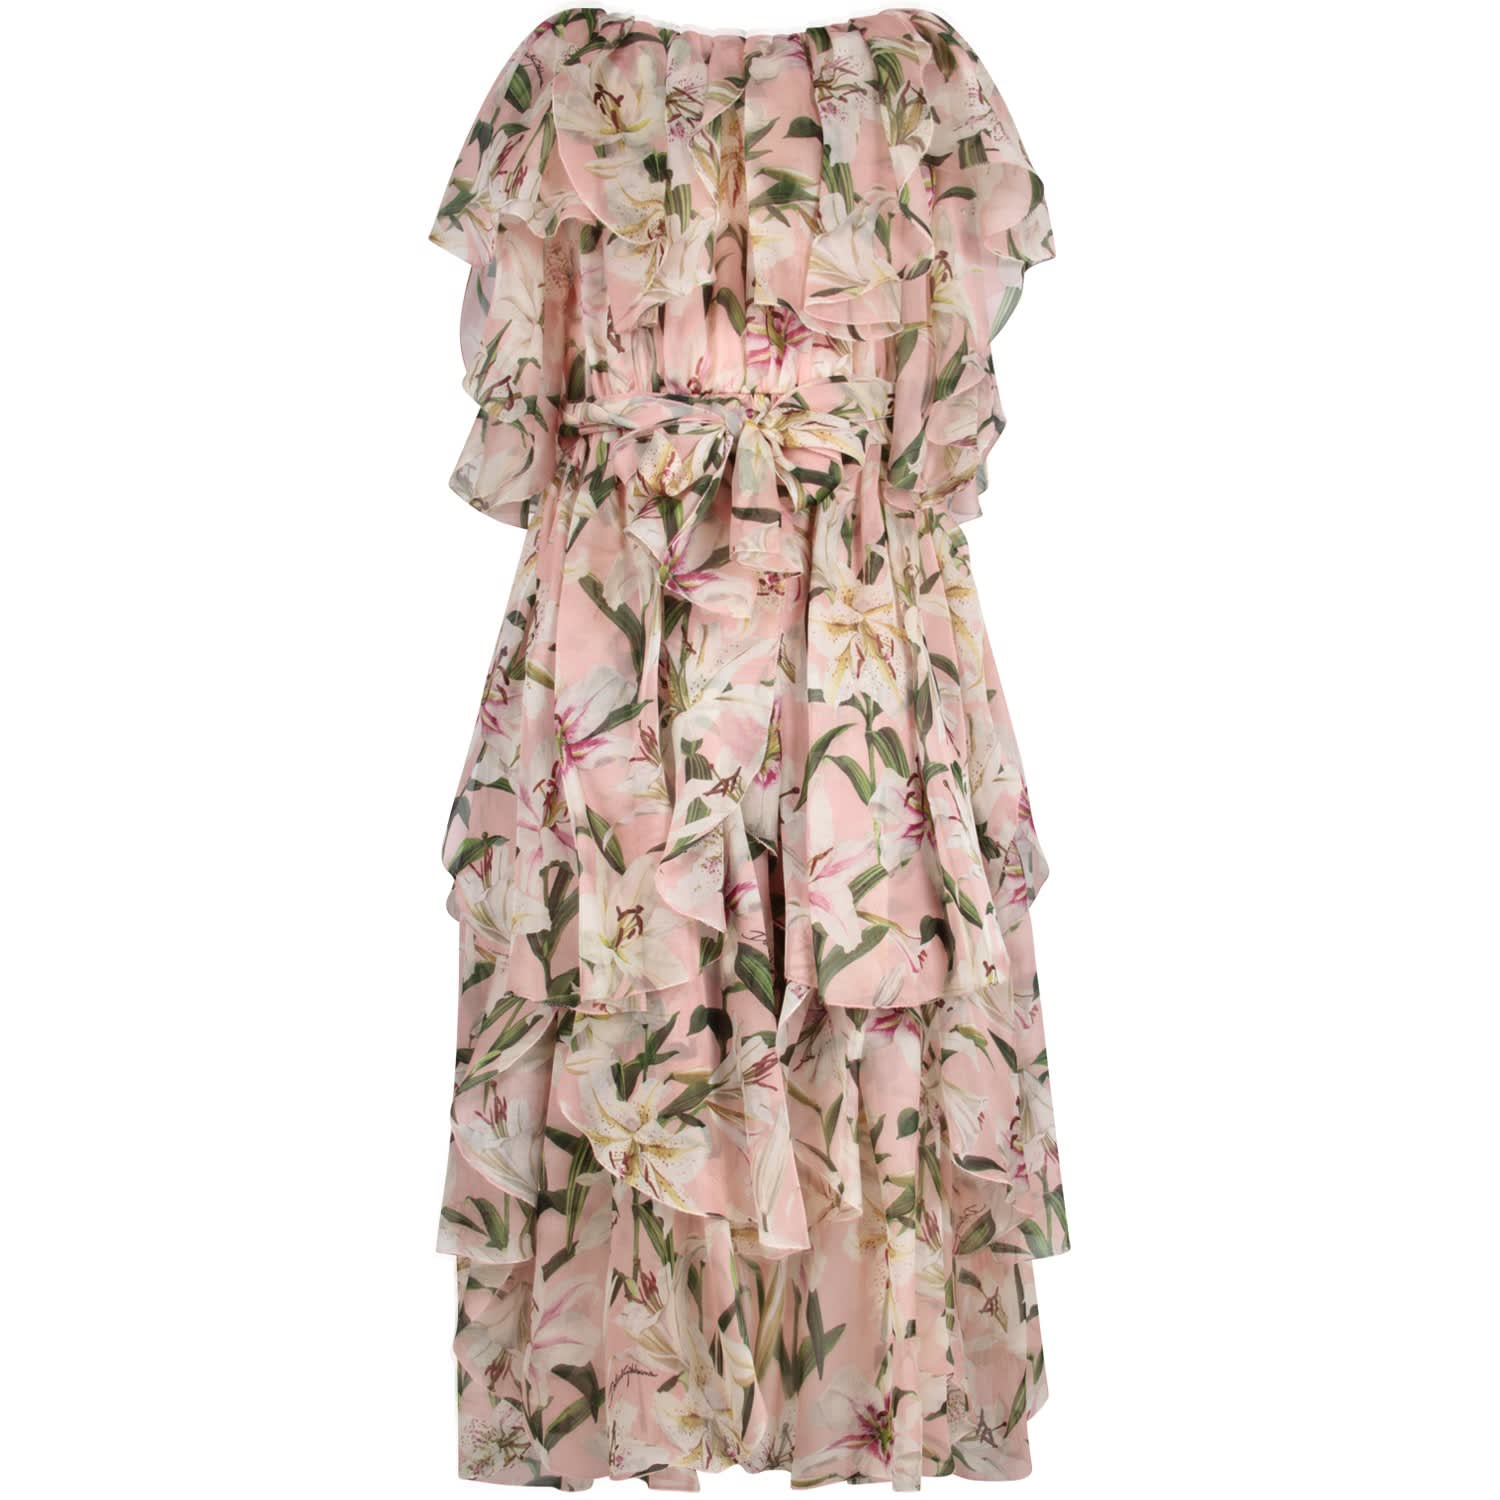 Dolce & Gabbana Pink Girl Dress With White Lilies